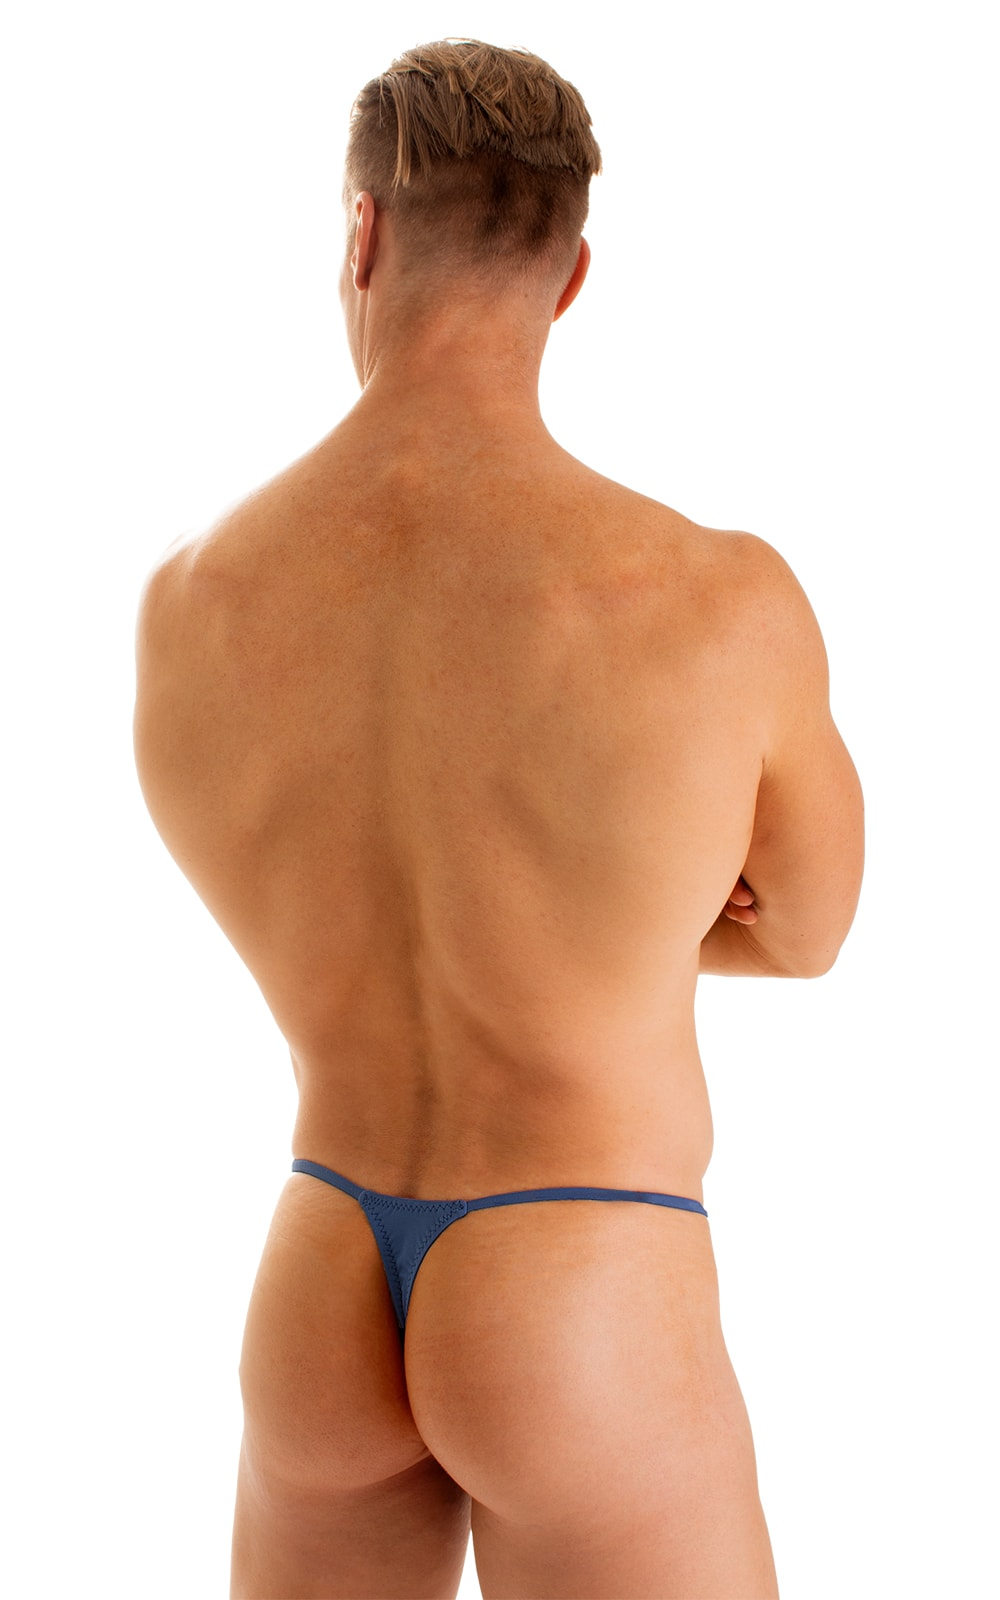 Smooth Pouch Skinny Sides Swim Thong in Globe 2